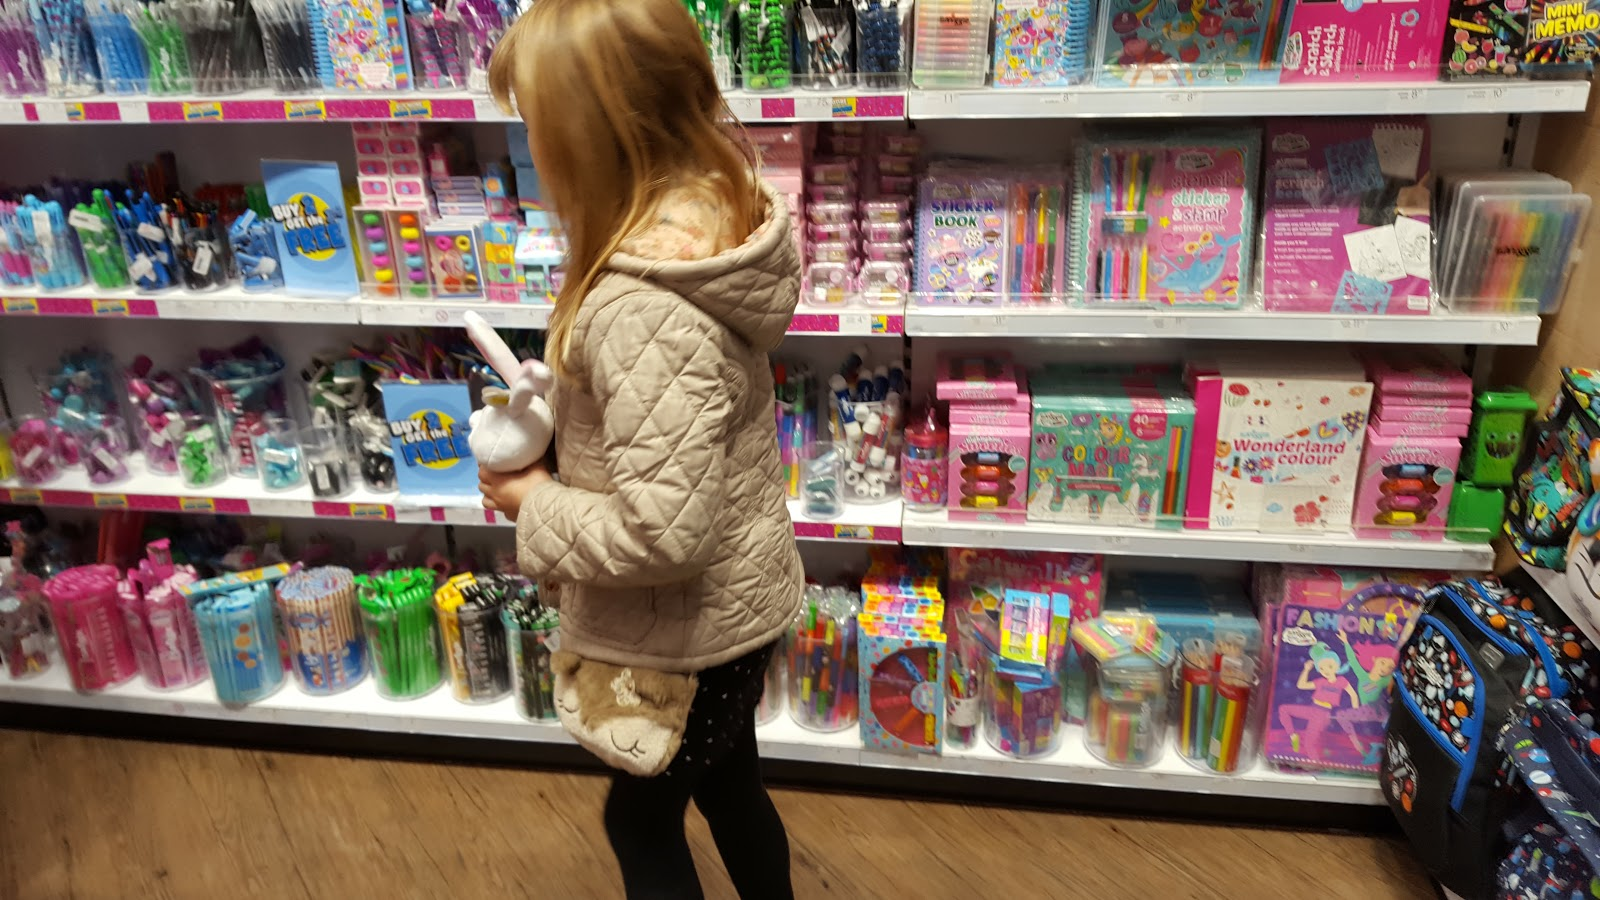 Shopping in Smiggle